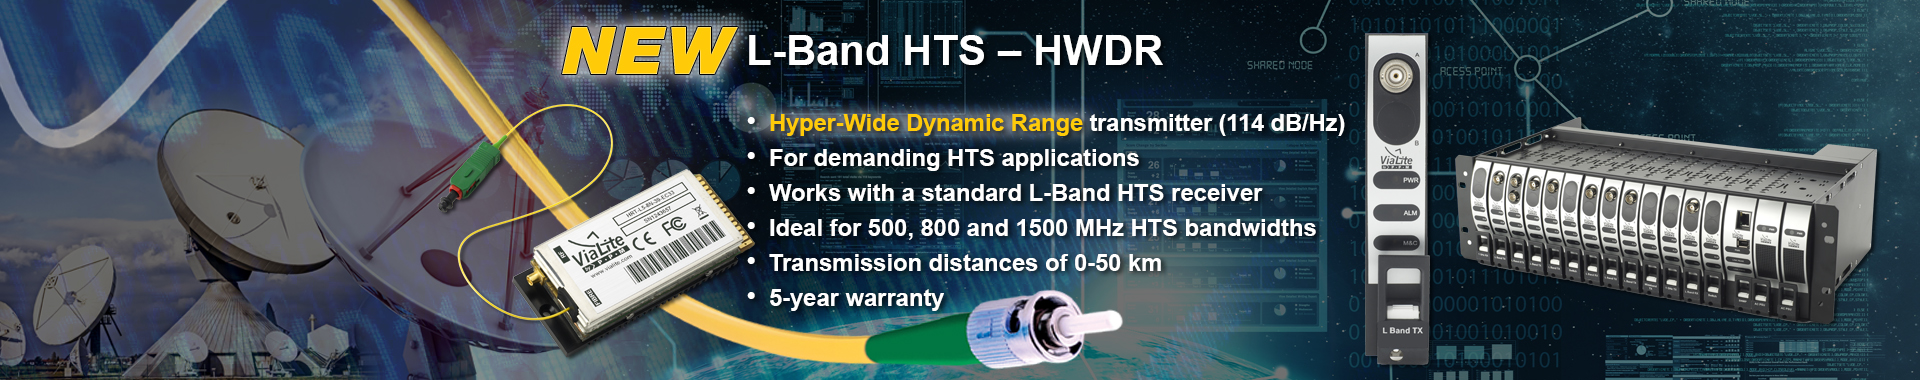 New ViaLite L-Band HTS - HWDR slider